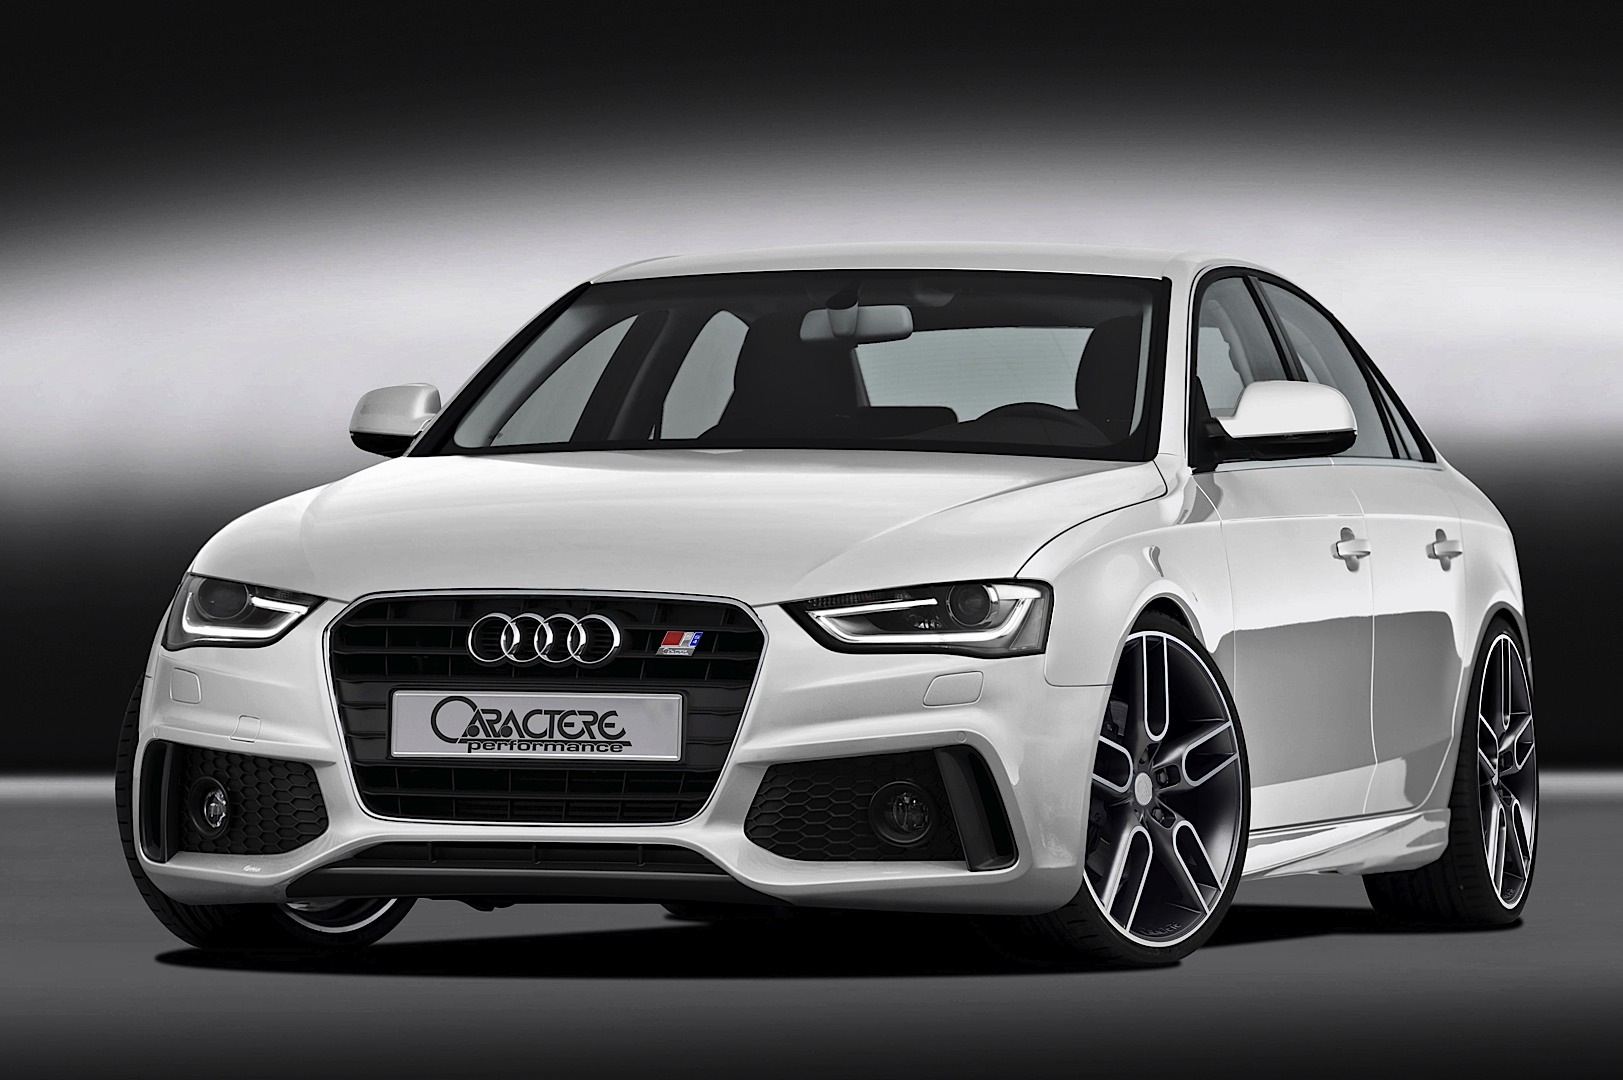 caractere body kit for the 2013 audi a4 and s4. Black Bedroom Furniture Sets. Home Design Ideas